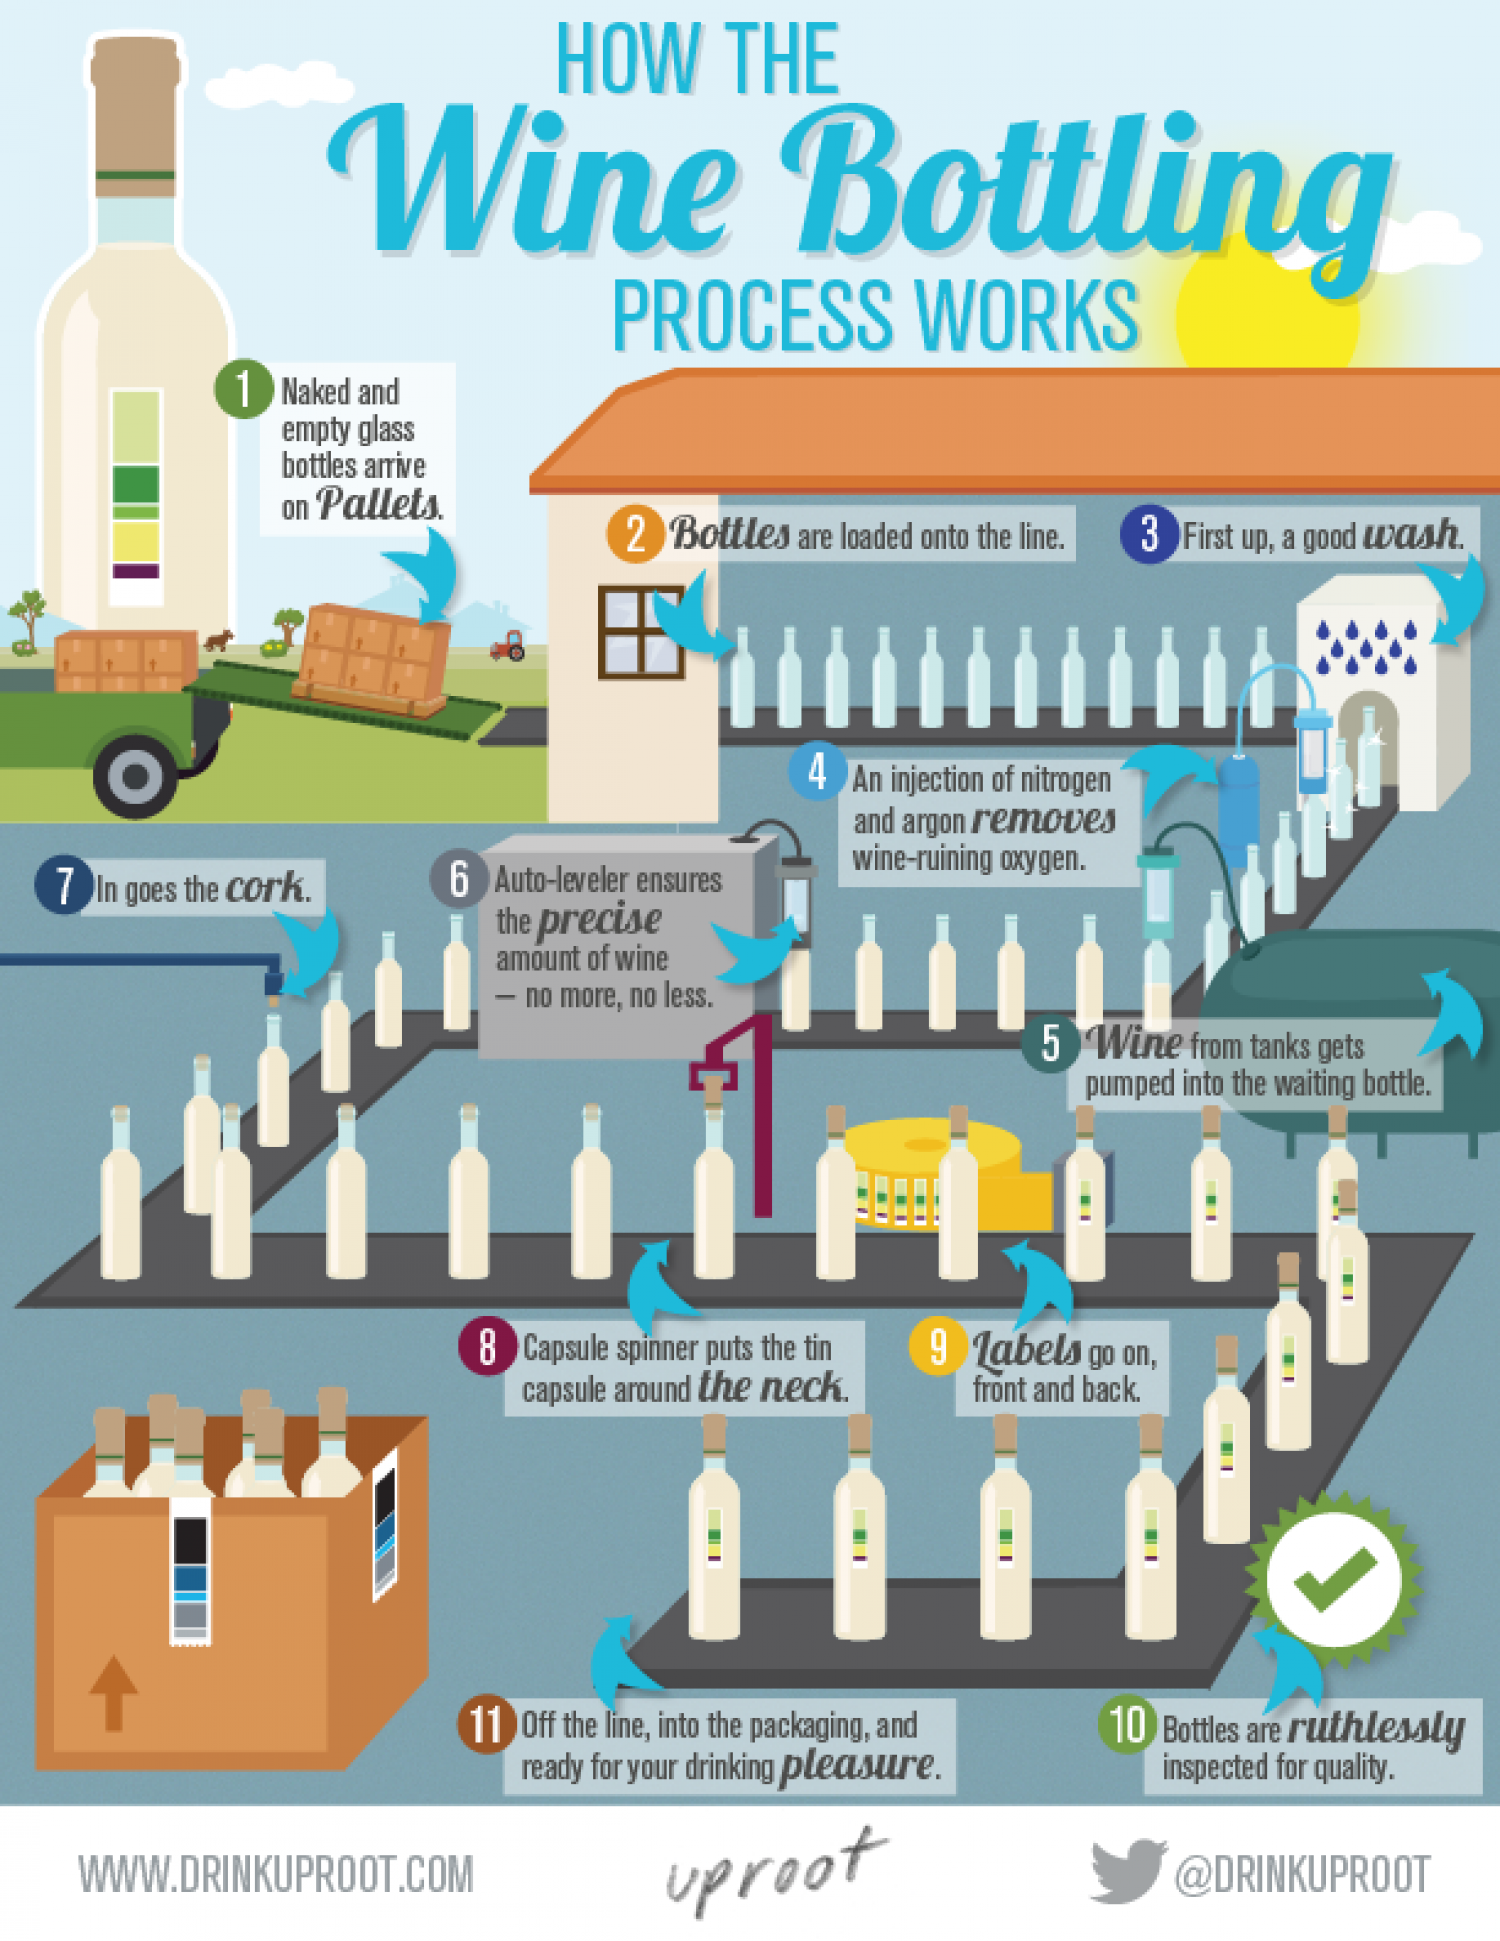 How the Wine Bottling Process Works Infographic